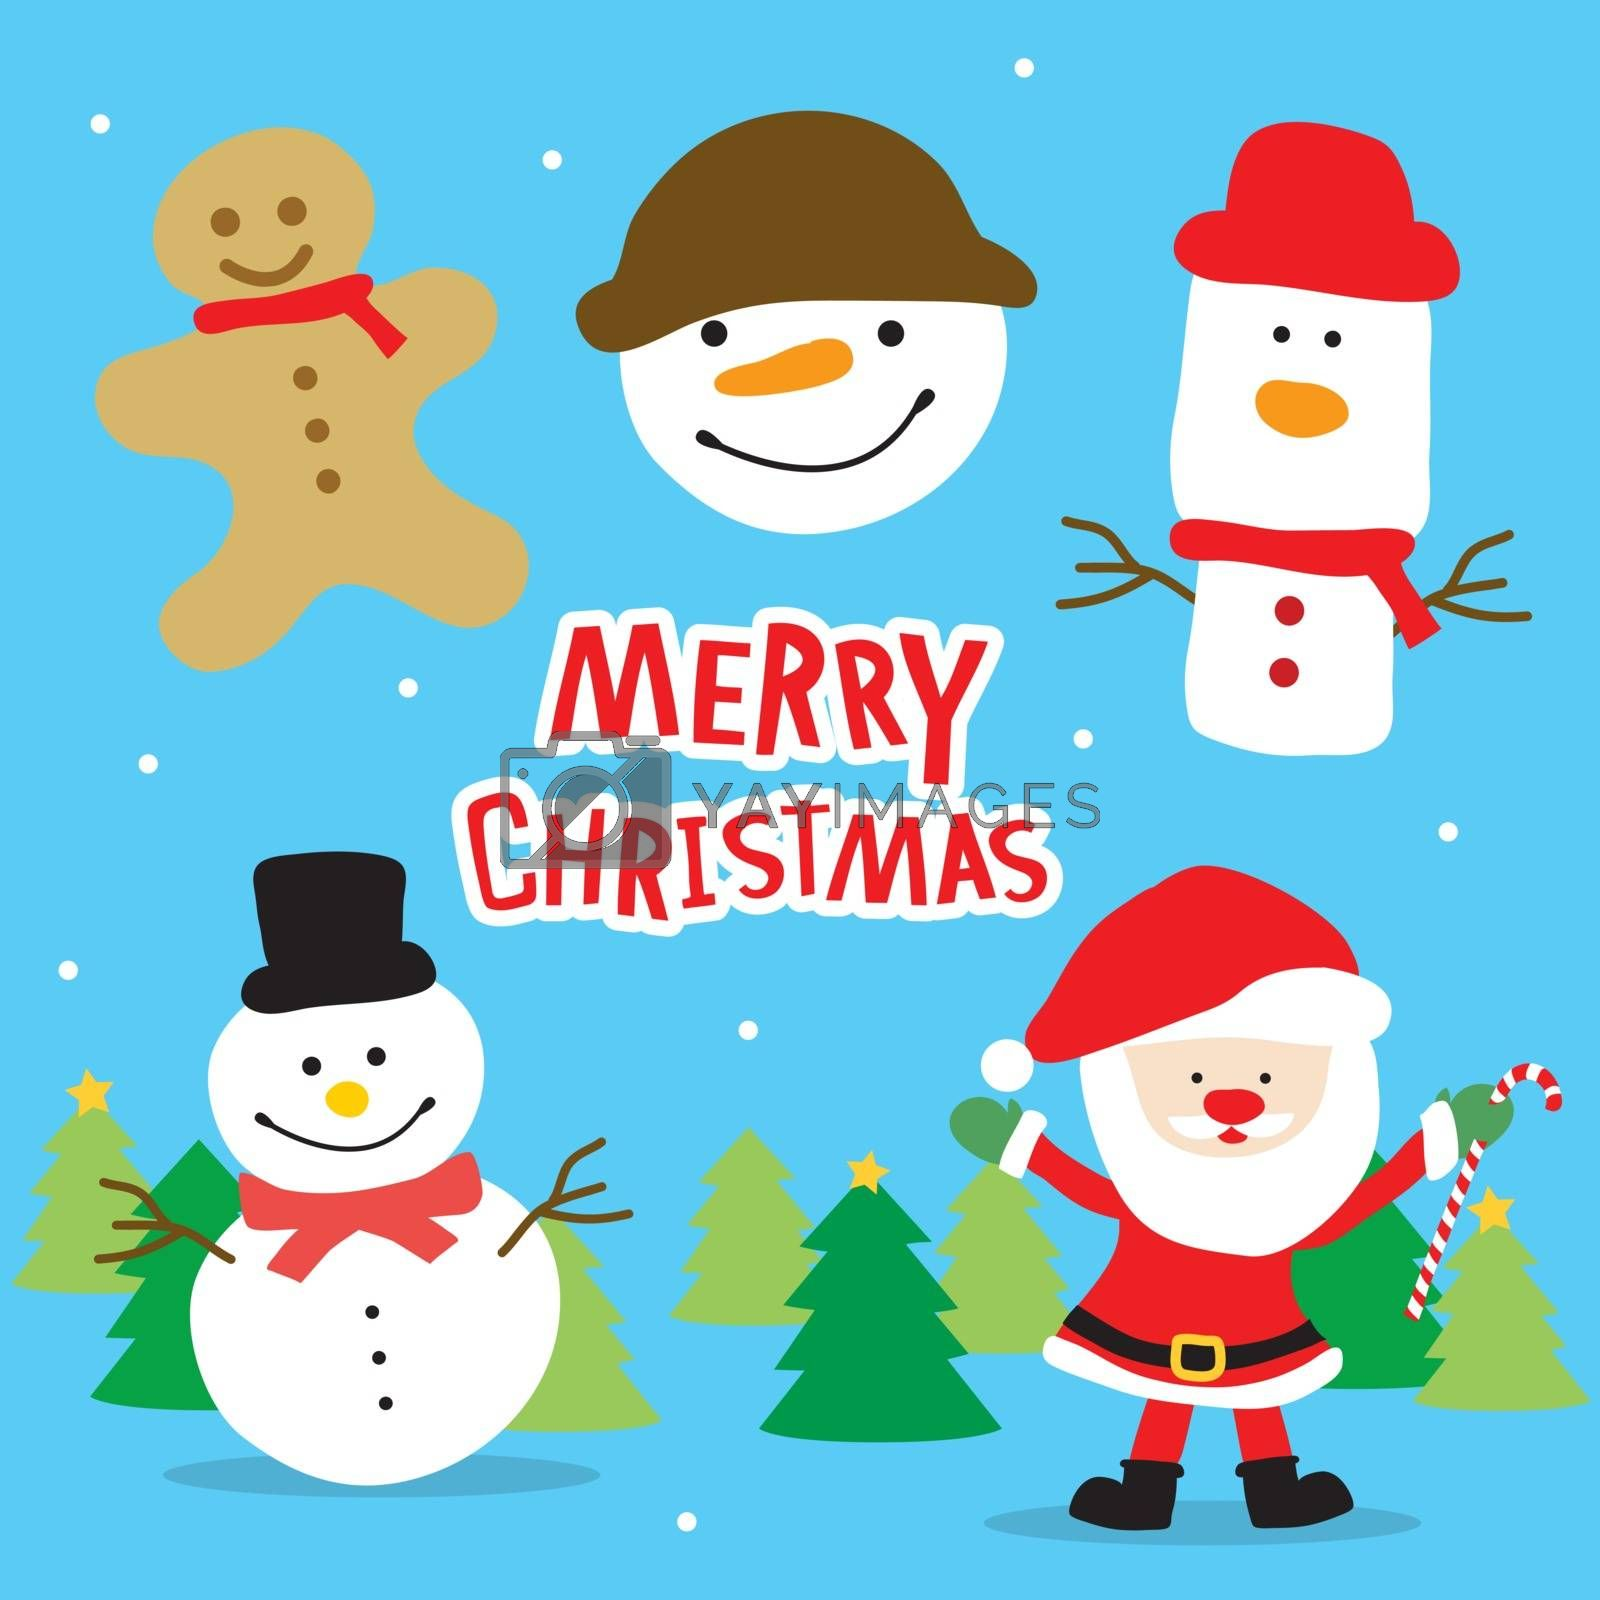 Royalty free image of Merry Christmas Santa Claus and Snowman Cartoon Vector by Ienjoyeverytime